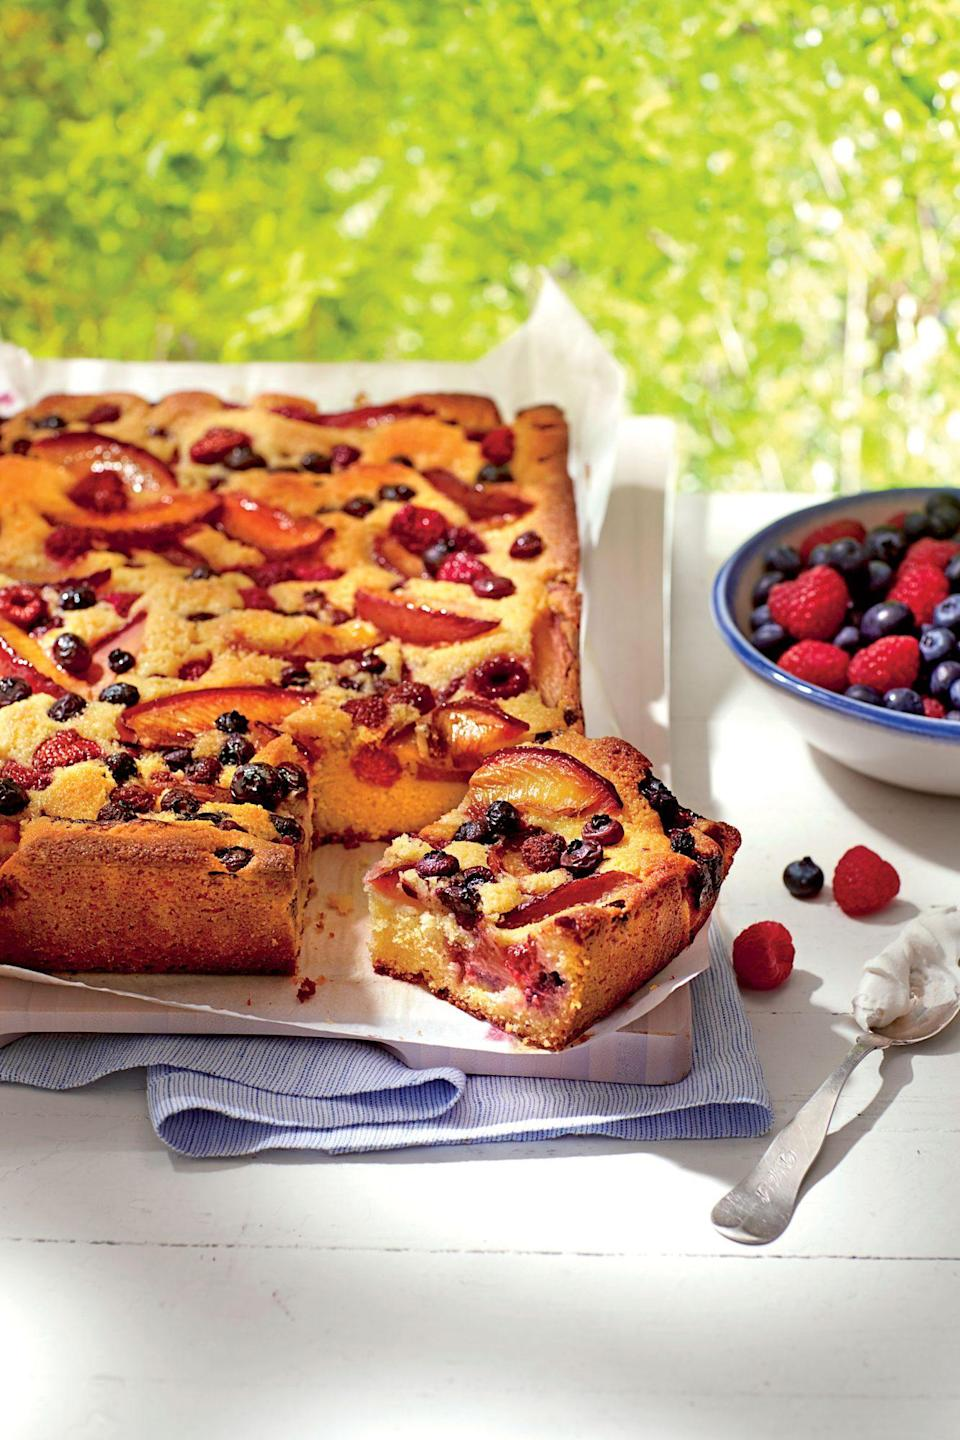 """<p><strong>Recipe: </strong><a href=""""https://www.southernliving.com/syndication/plum-berry-cornmeal-sheet-cake"""" rel=""""nofollow noopener"""" target=""""_blank"""" data-ylk=""""slk:Plum-Berry Cornmeal Sheet Cake"""" class=""""link rapid-noclick-resp""""><strong>Plum-Berry Cornmeal Sheet Cake</strong></a></p> <p>Use any kind of mixed fresh berries you choose, just keep the amount the same as is specified in the ingredient list. As the cake bakes, the batter nestles around all the fresh fruit, cooking it just enough to ensure each bite is bursting with gorgeous, fruity flavor.</p>"""